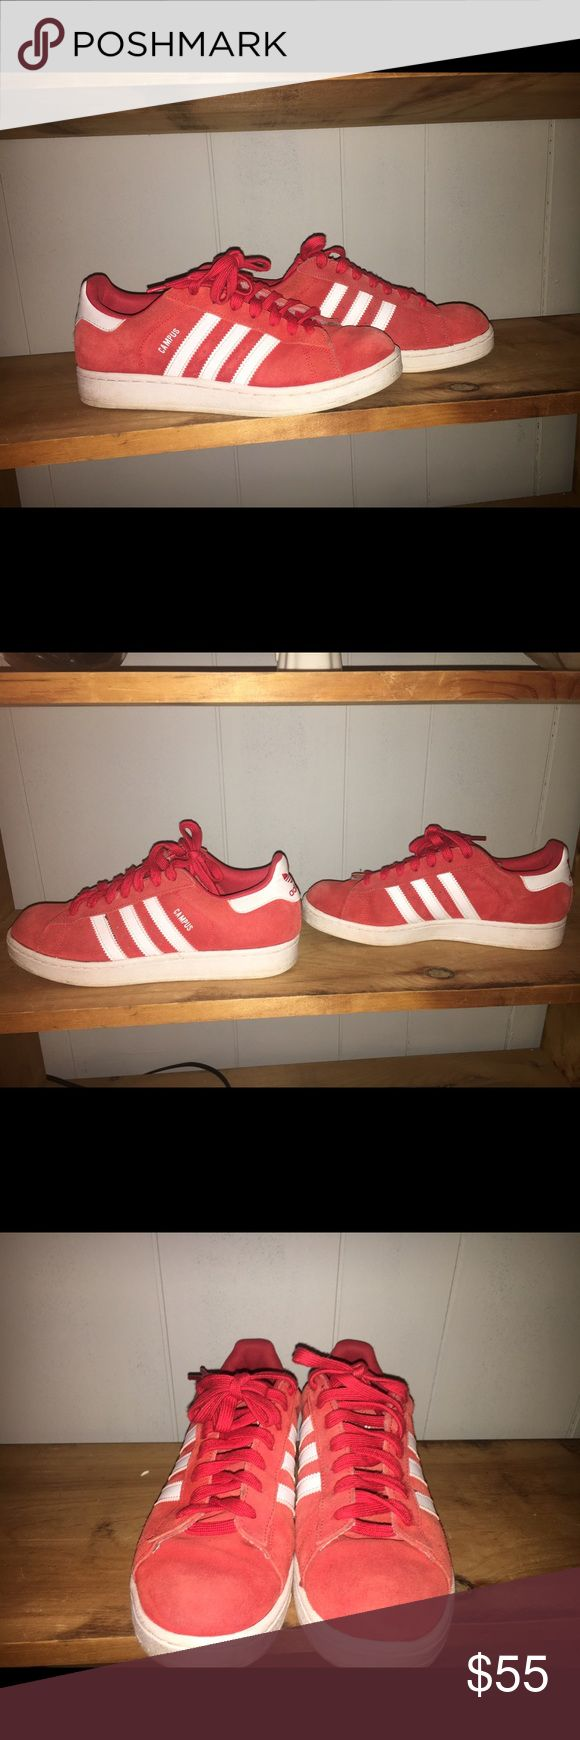 Red Adidas Superstar Campus Shoes These are a size 8 in men and about a 9 1/2 in women's. They are in fair condition with some flaws. With a few good cleanings could take away some of those flaws. Comment with any questions! Adidas Shoes Sneakers